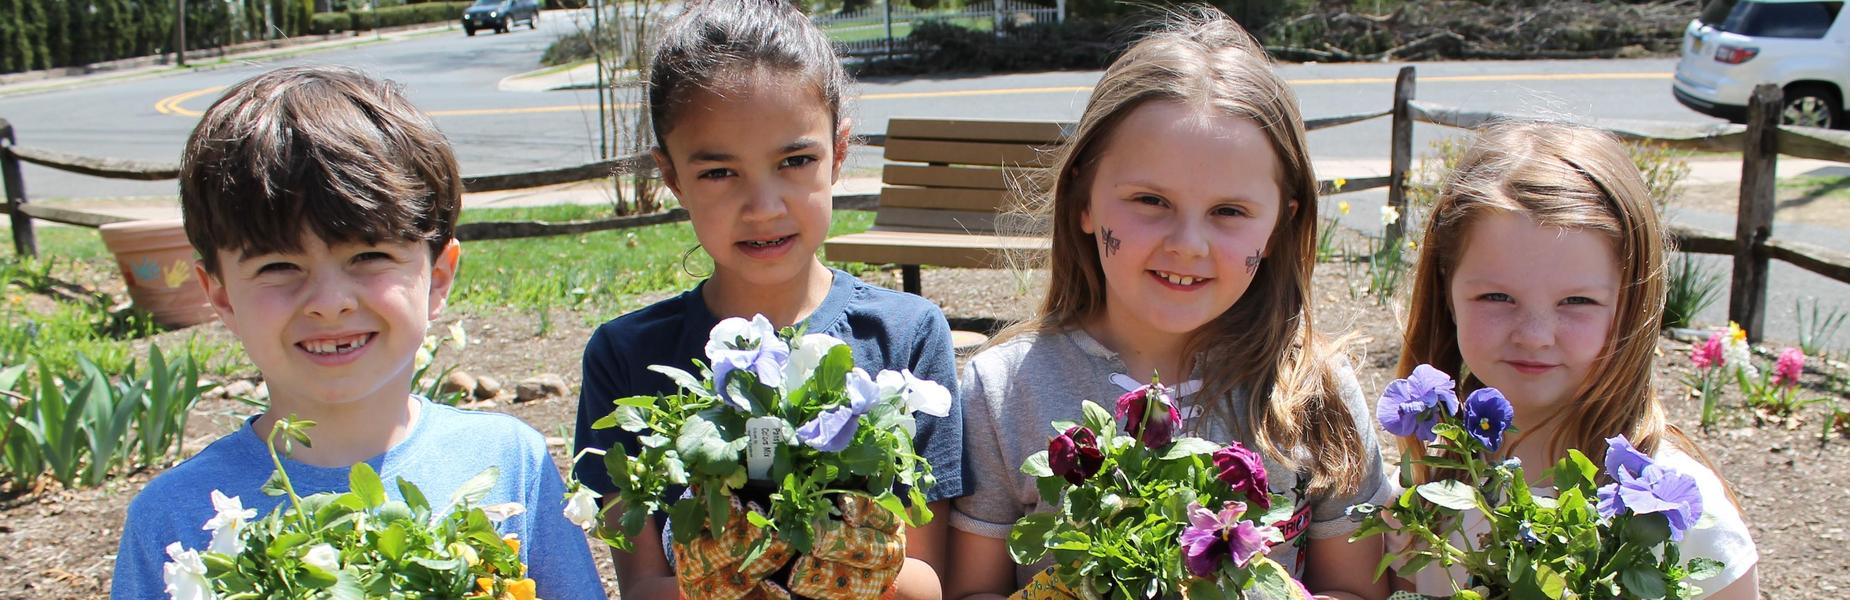 Spring. Members of the Habitat Garden Club at Franklin took advantage of two days of sunshine and warmer temperatures to plant some flowers and vegetables, including lettuce, broccoli, cabbage and onions.